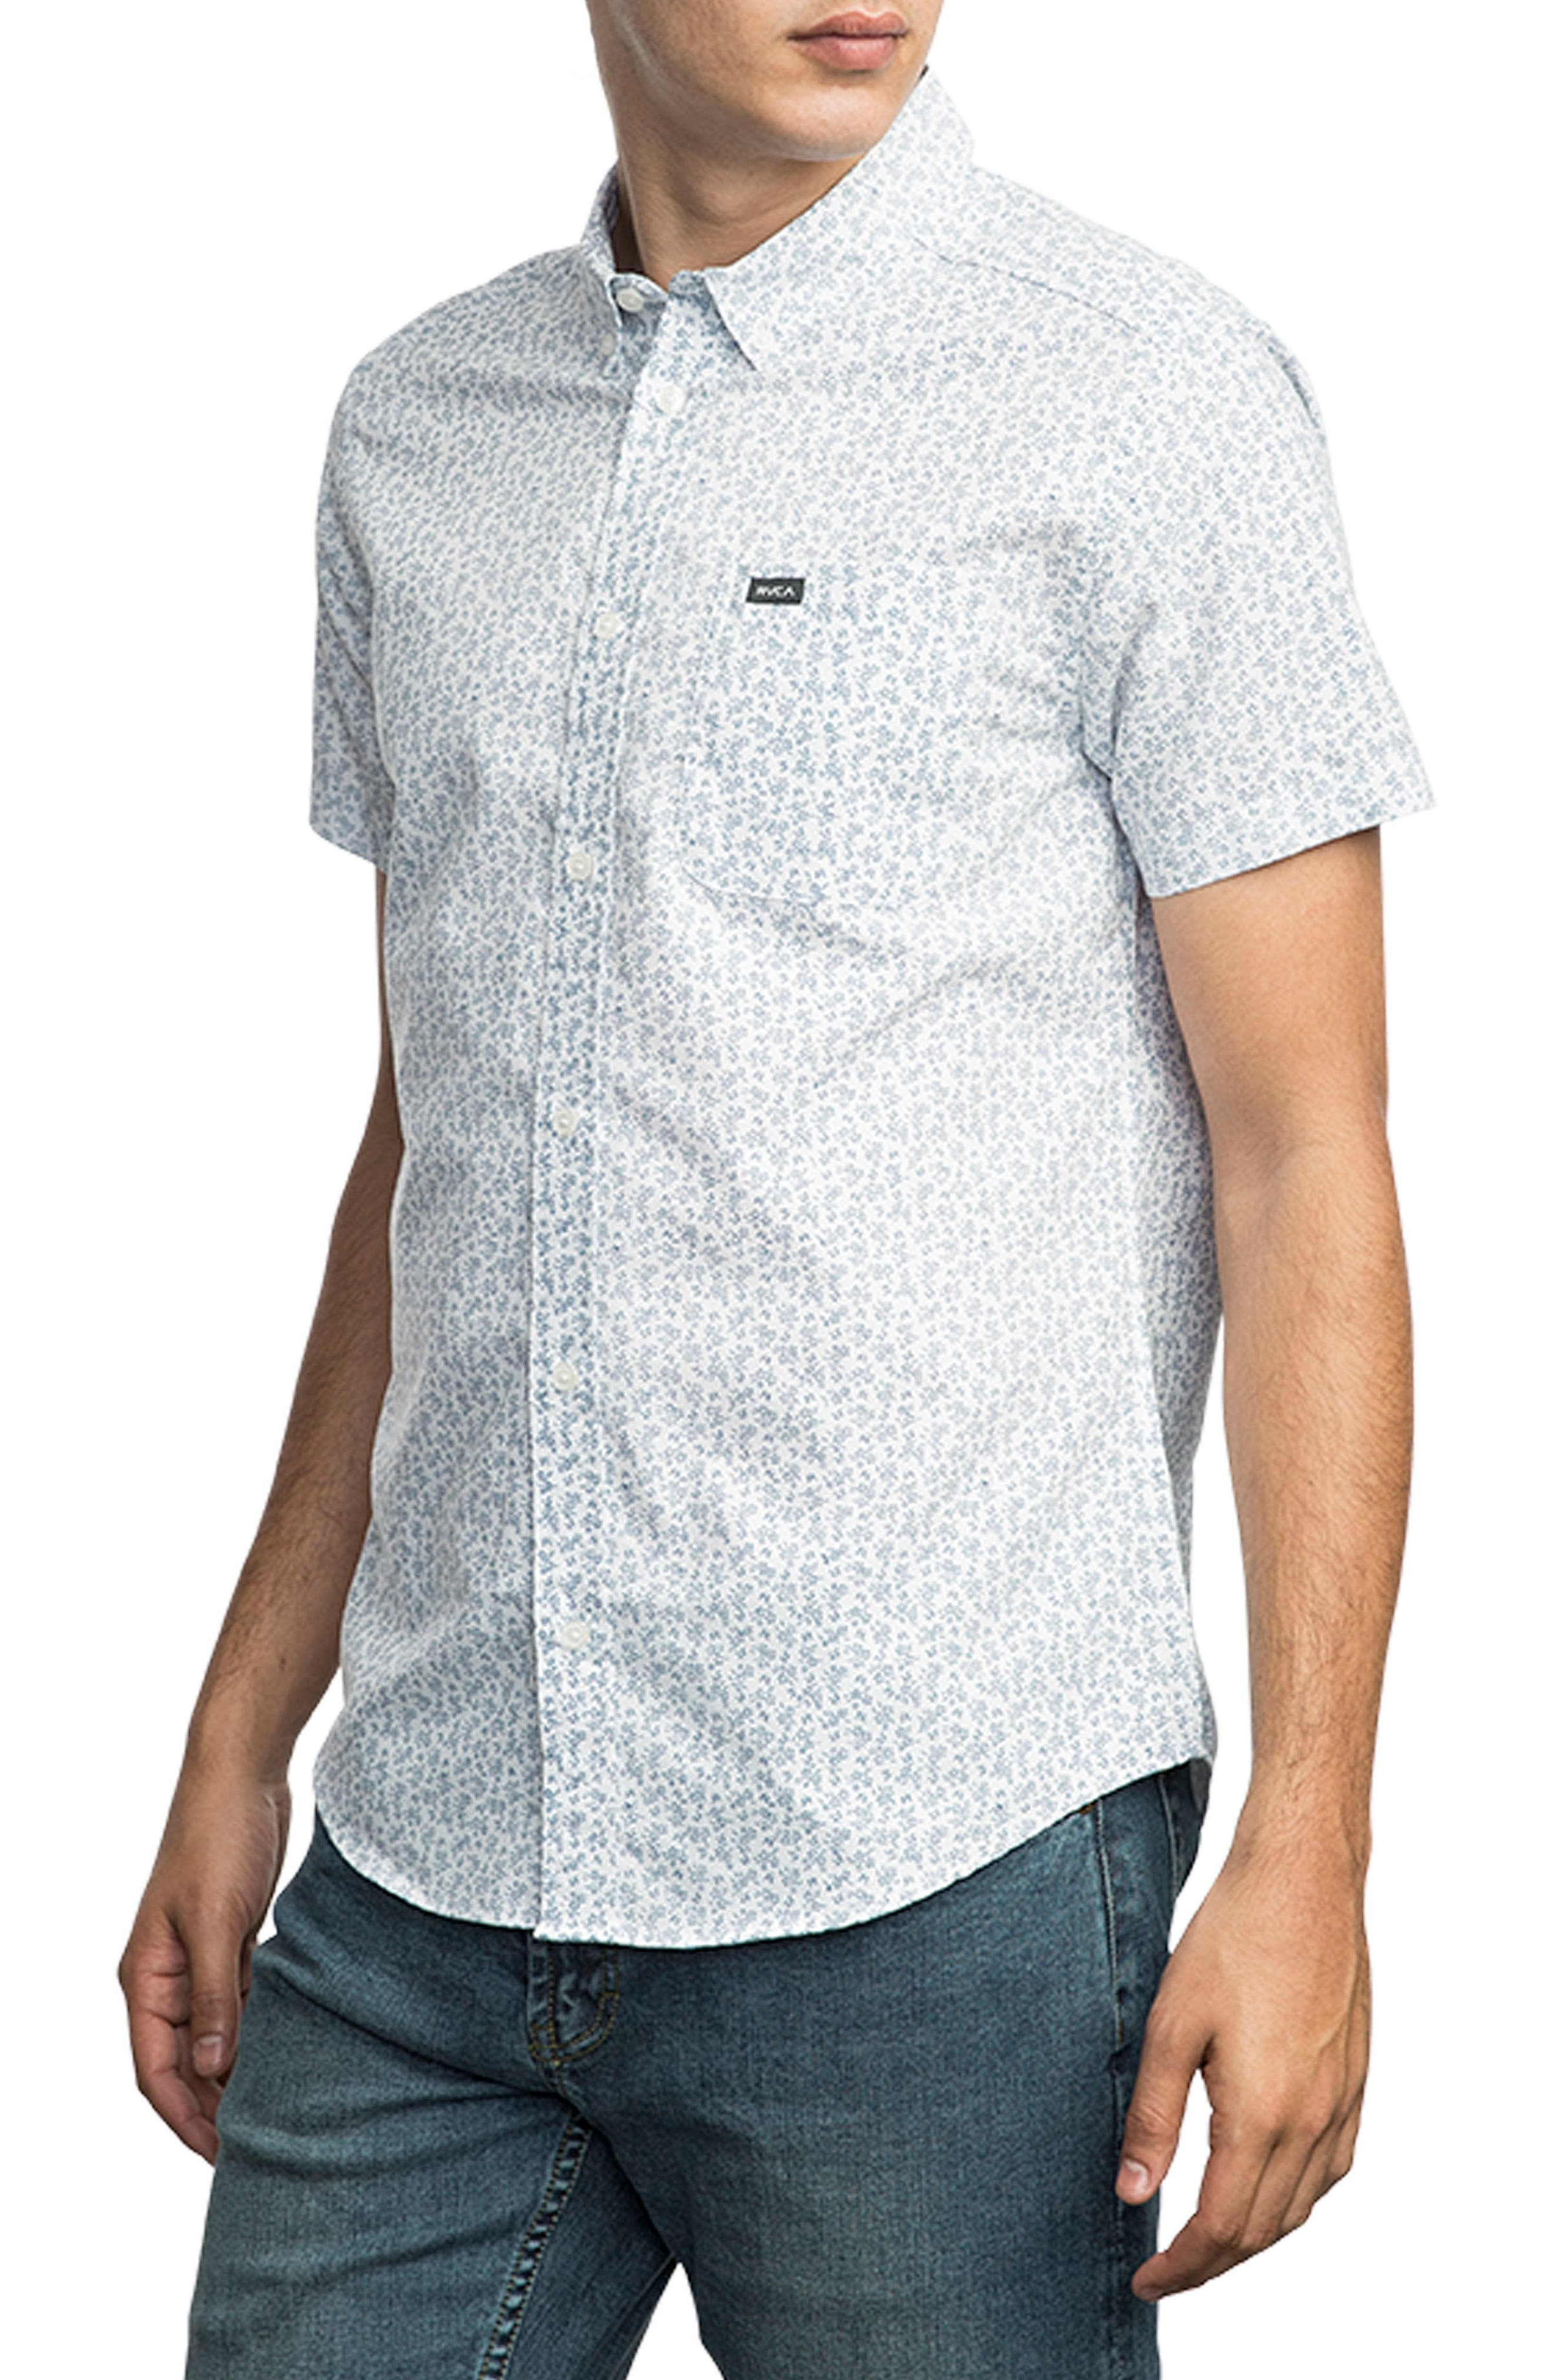 That'll Do Floral Woven Shirt,                             Alternate thumbnail 3, color,                             100